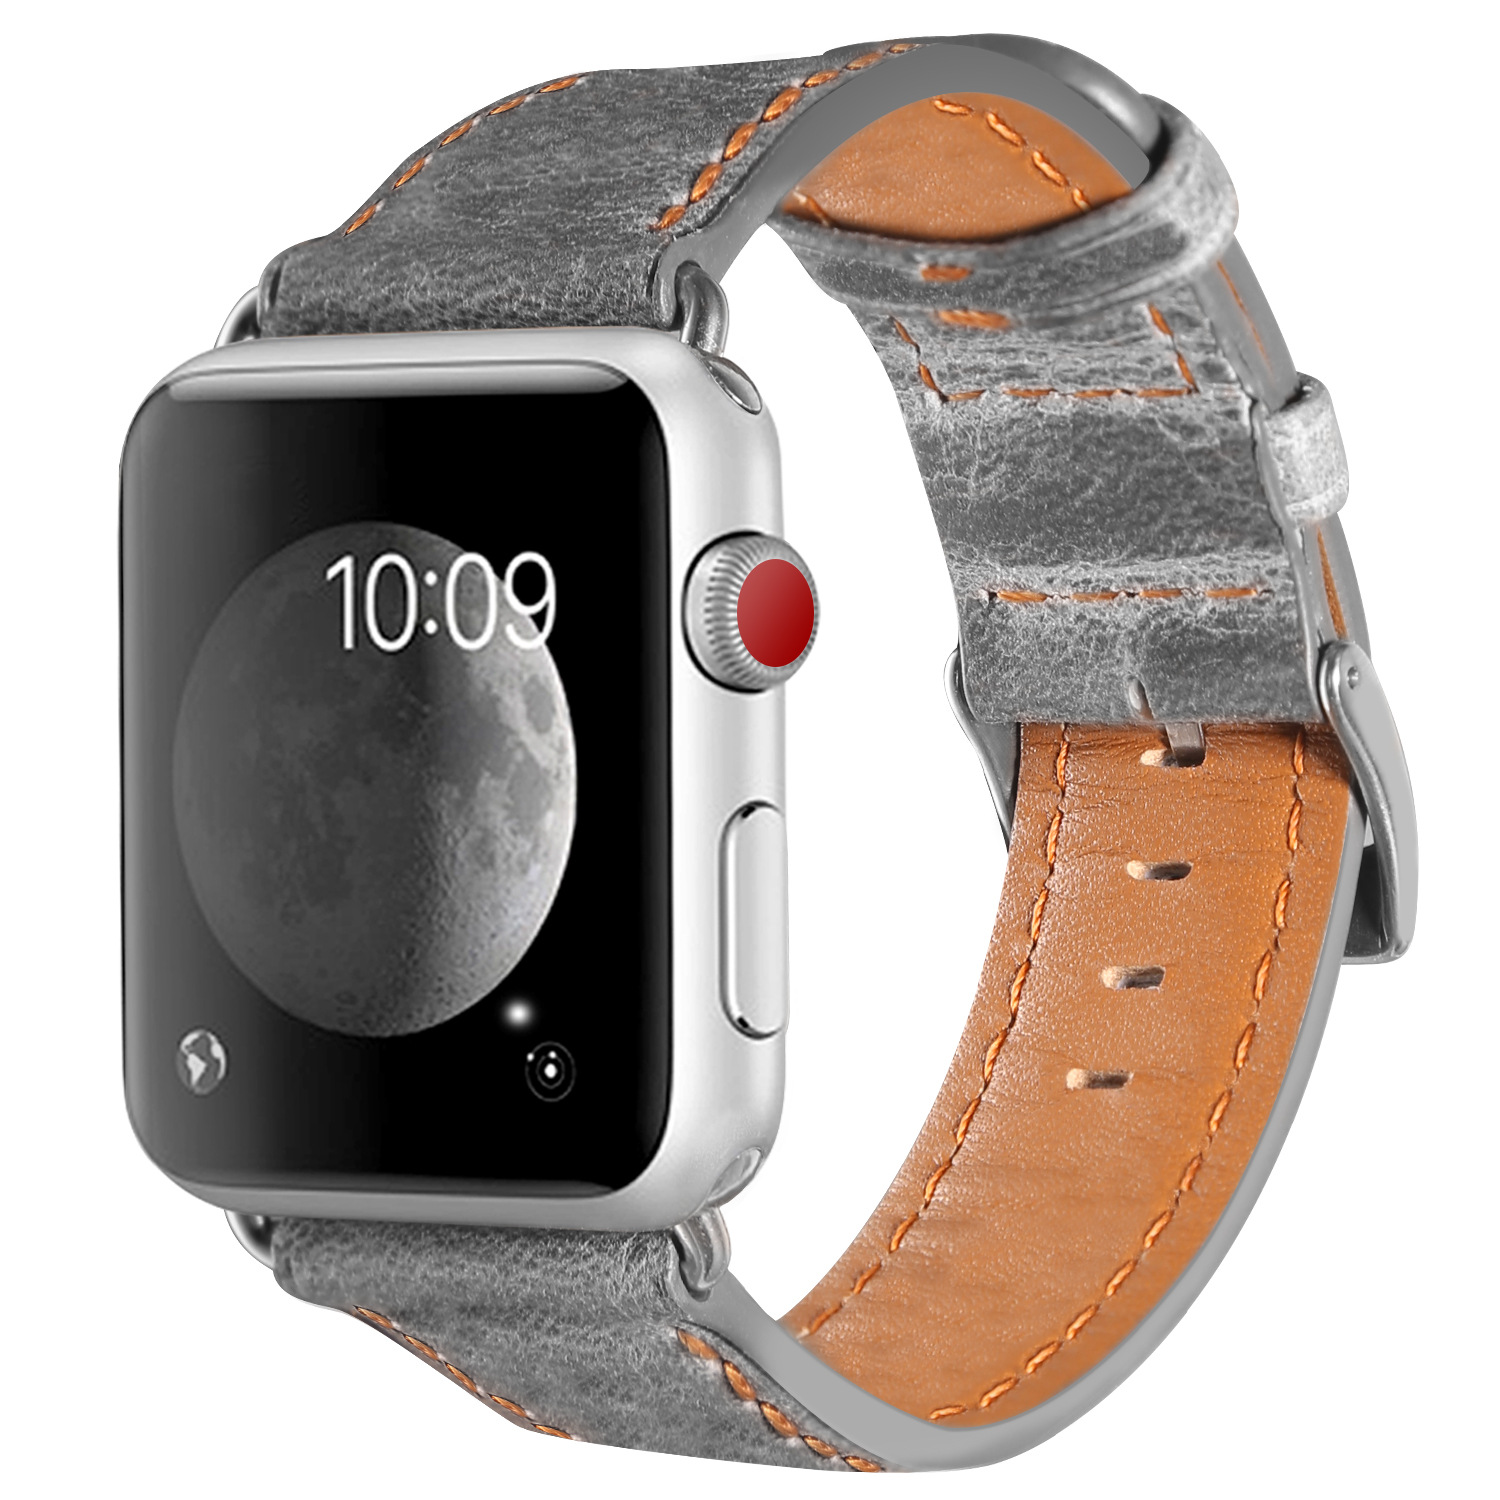 2018 Retro Handmade Genuine Leather Band for Apple Watch 1 2 3 Series 38mm 42mm Strap  for Iwatch Band Bracelet Belt Leather New woven canvas casual sports watch band iwatch strap genuine leather watch belt for apple watch